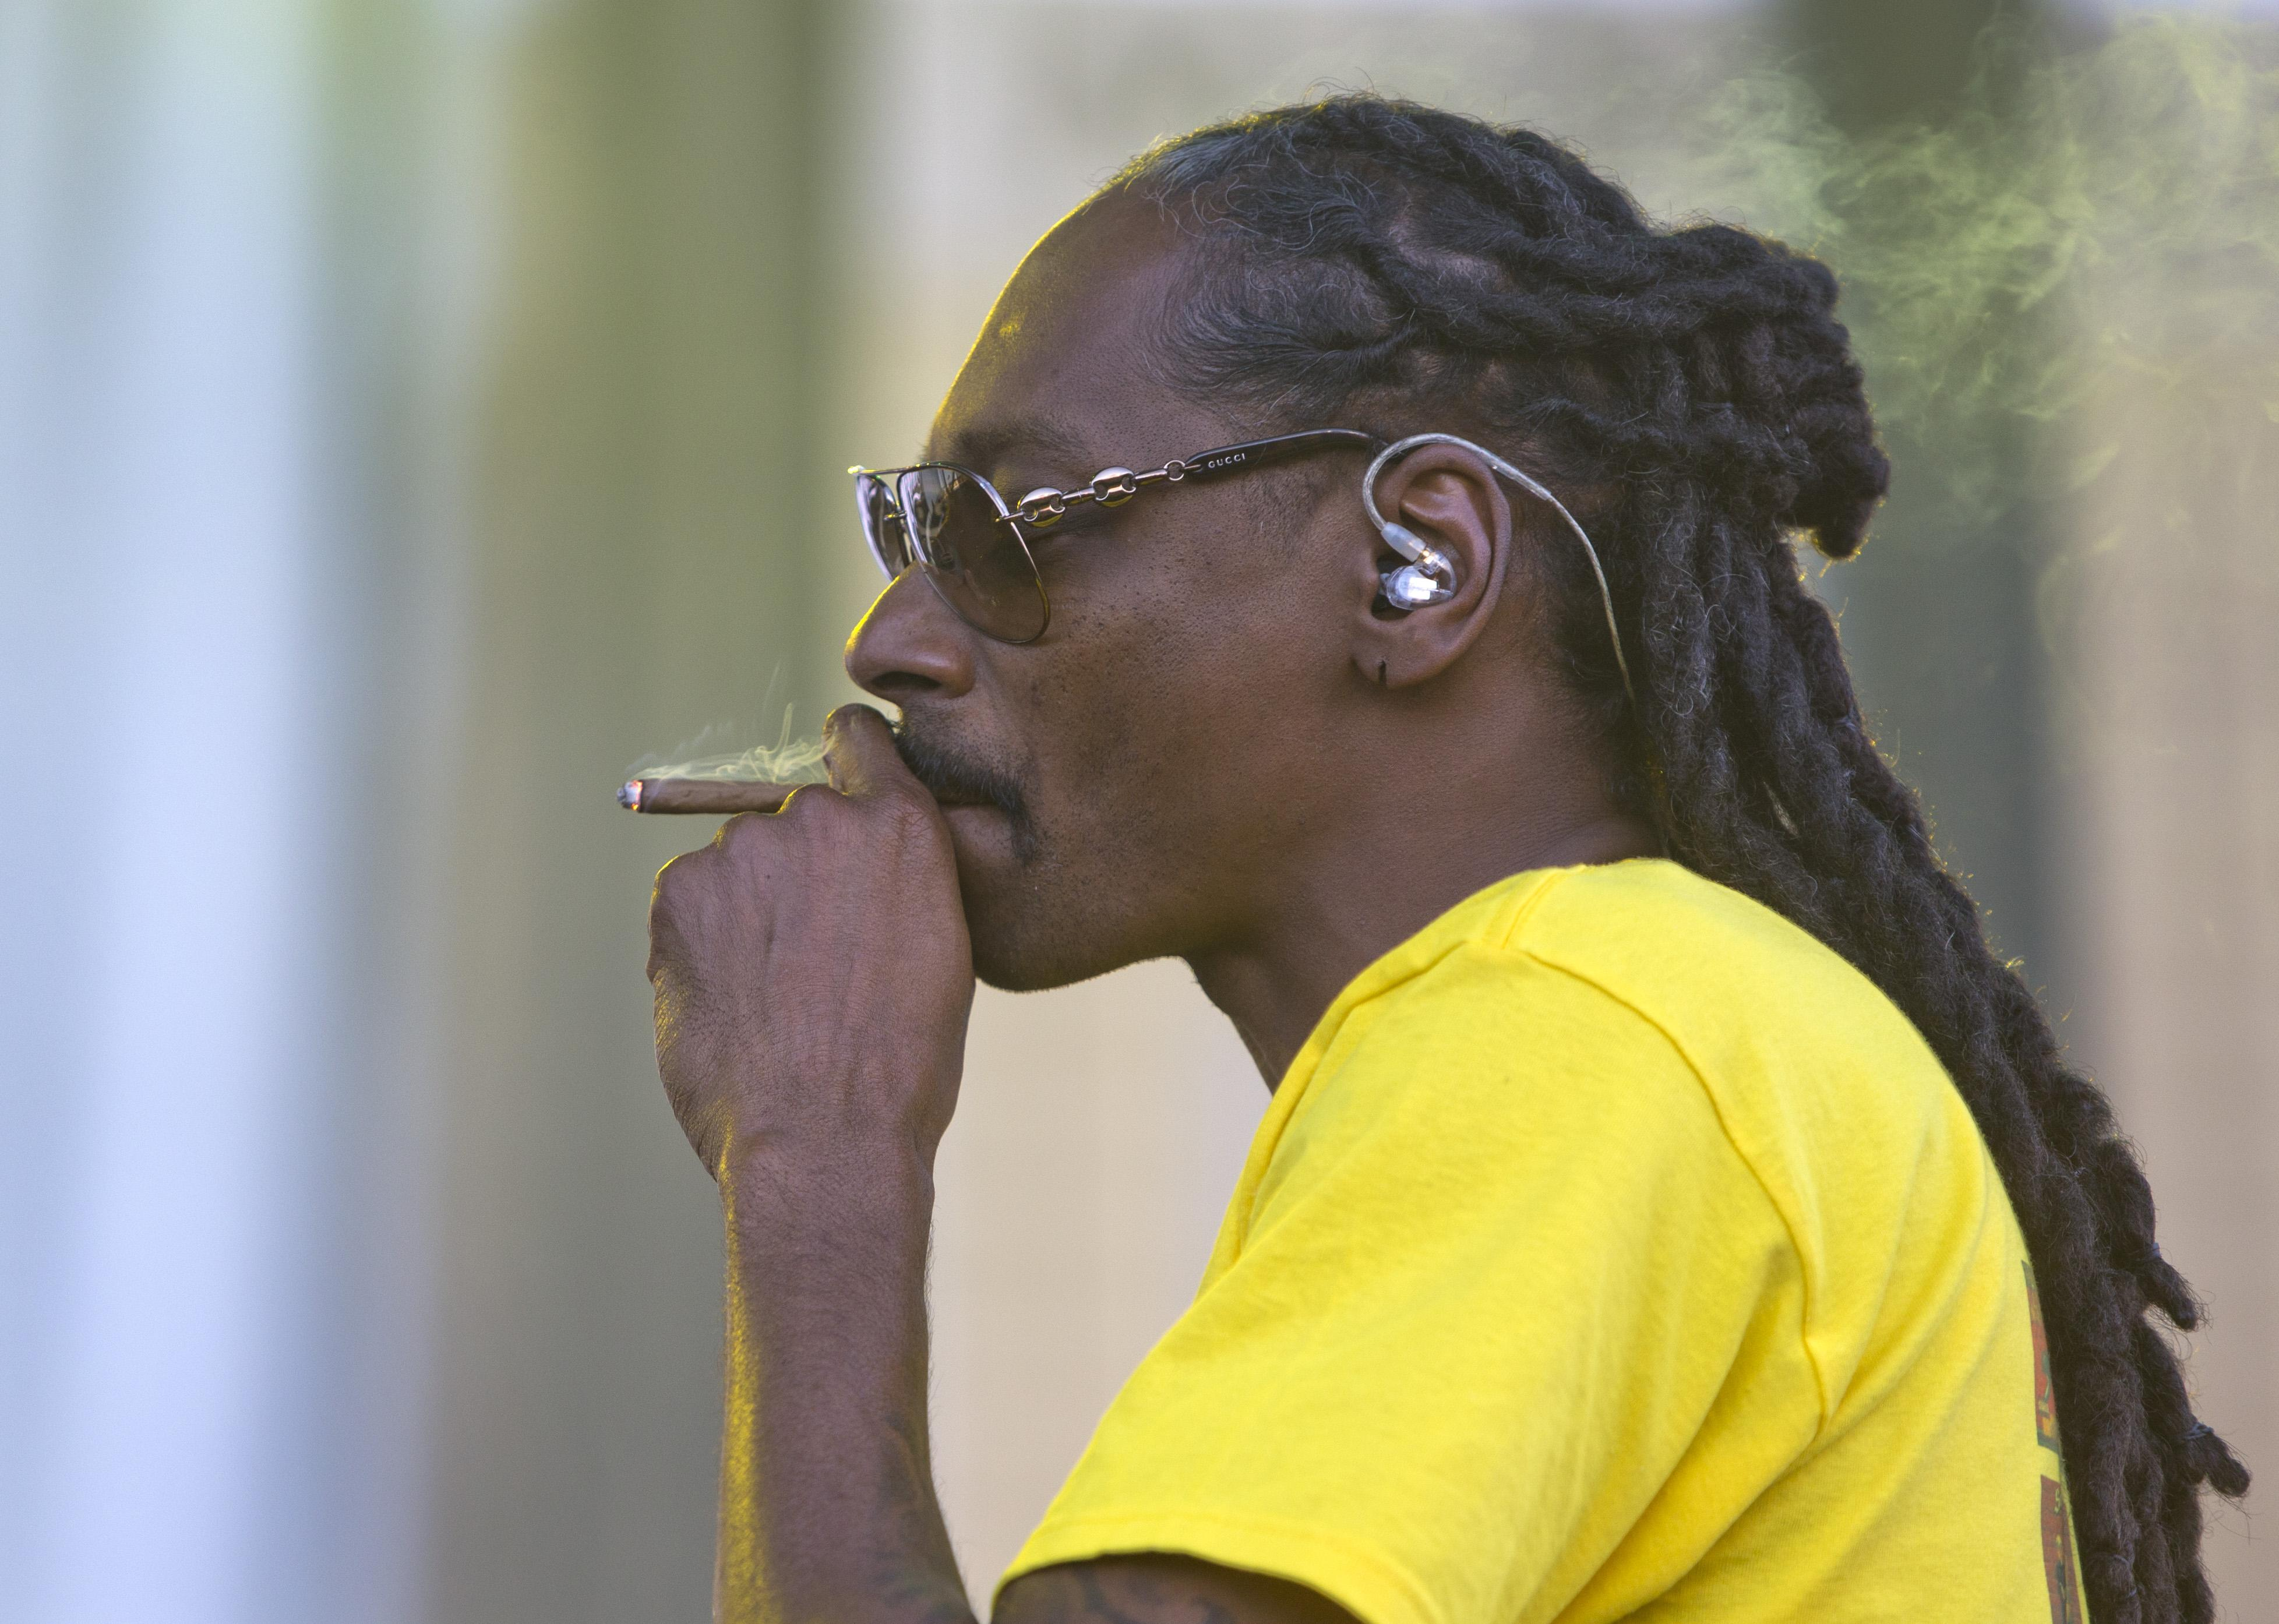 After A December Visit By Rapper Snoop Dogg Royals Cannabis Marijuana Store In Spokane Saw